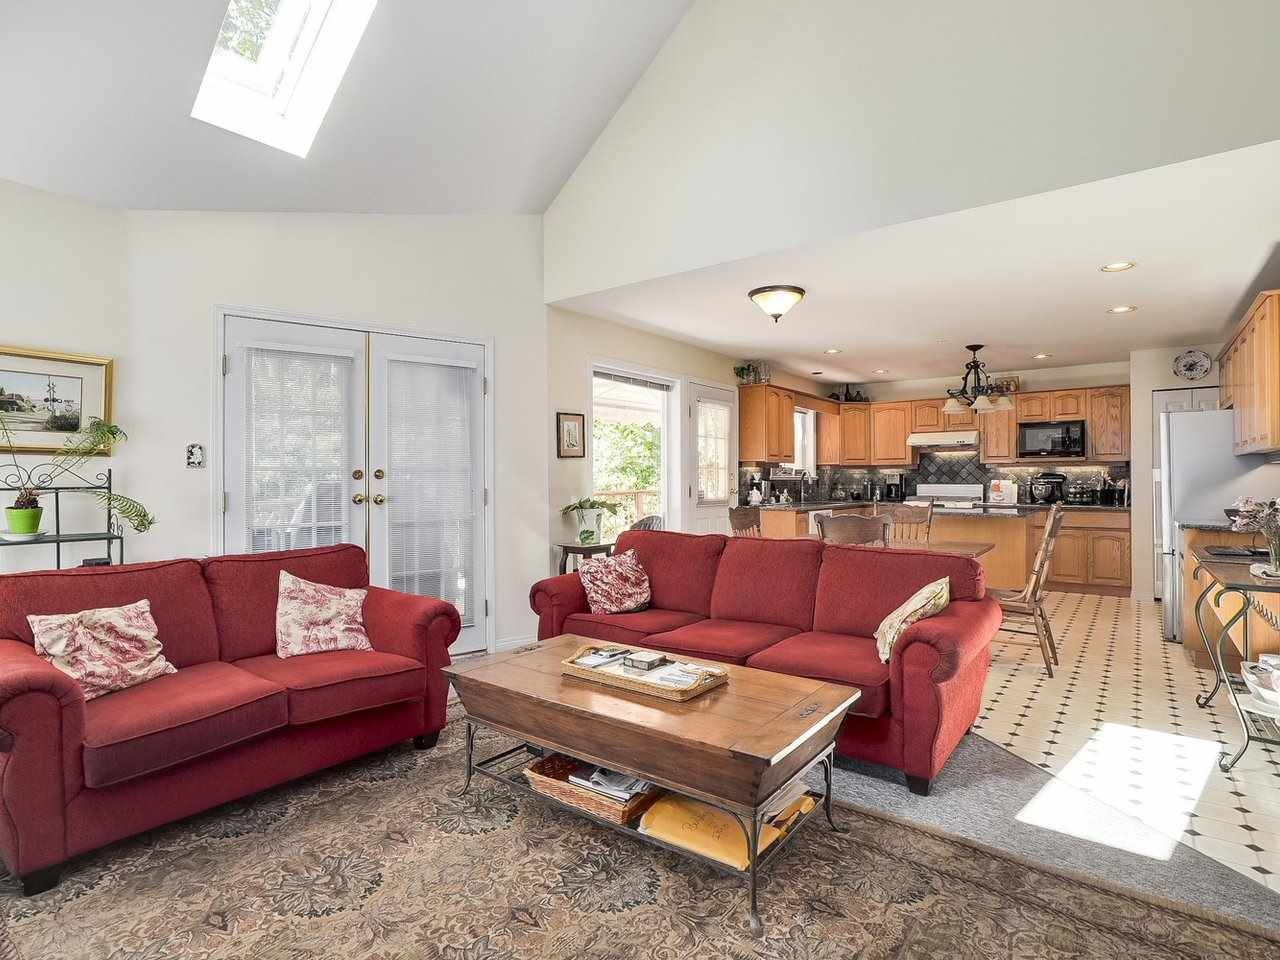 Photo 6: Photos: 1788 GORDON Avenue in West Vancouver: Ambleside House for sale : MLS®# R2207715